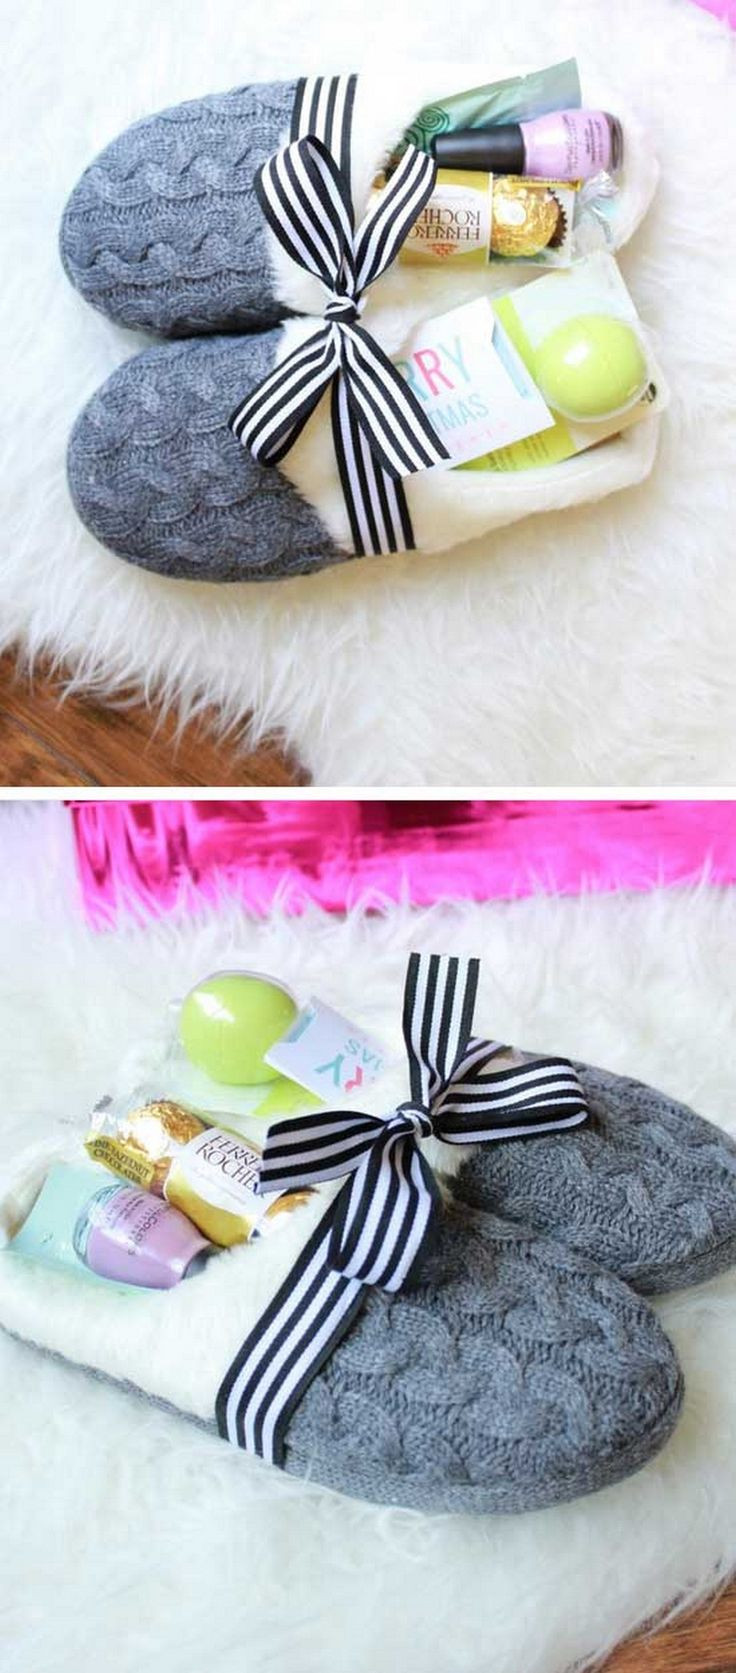 Best ideas about DIY Gifts Ideas For Friends . Save or Pin Best 25 Diy best friend ts ideas on Pinterest Now.